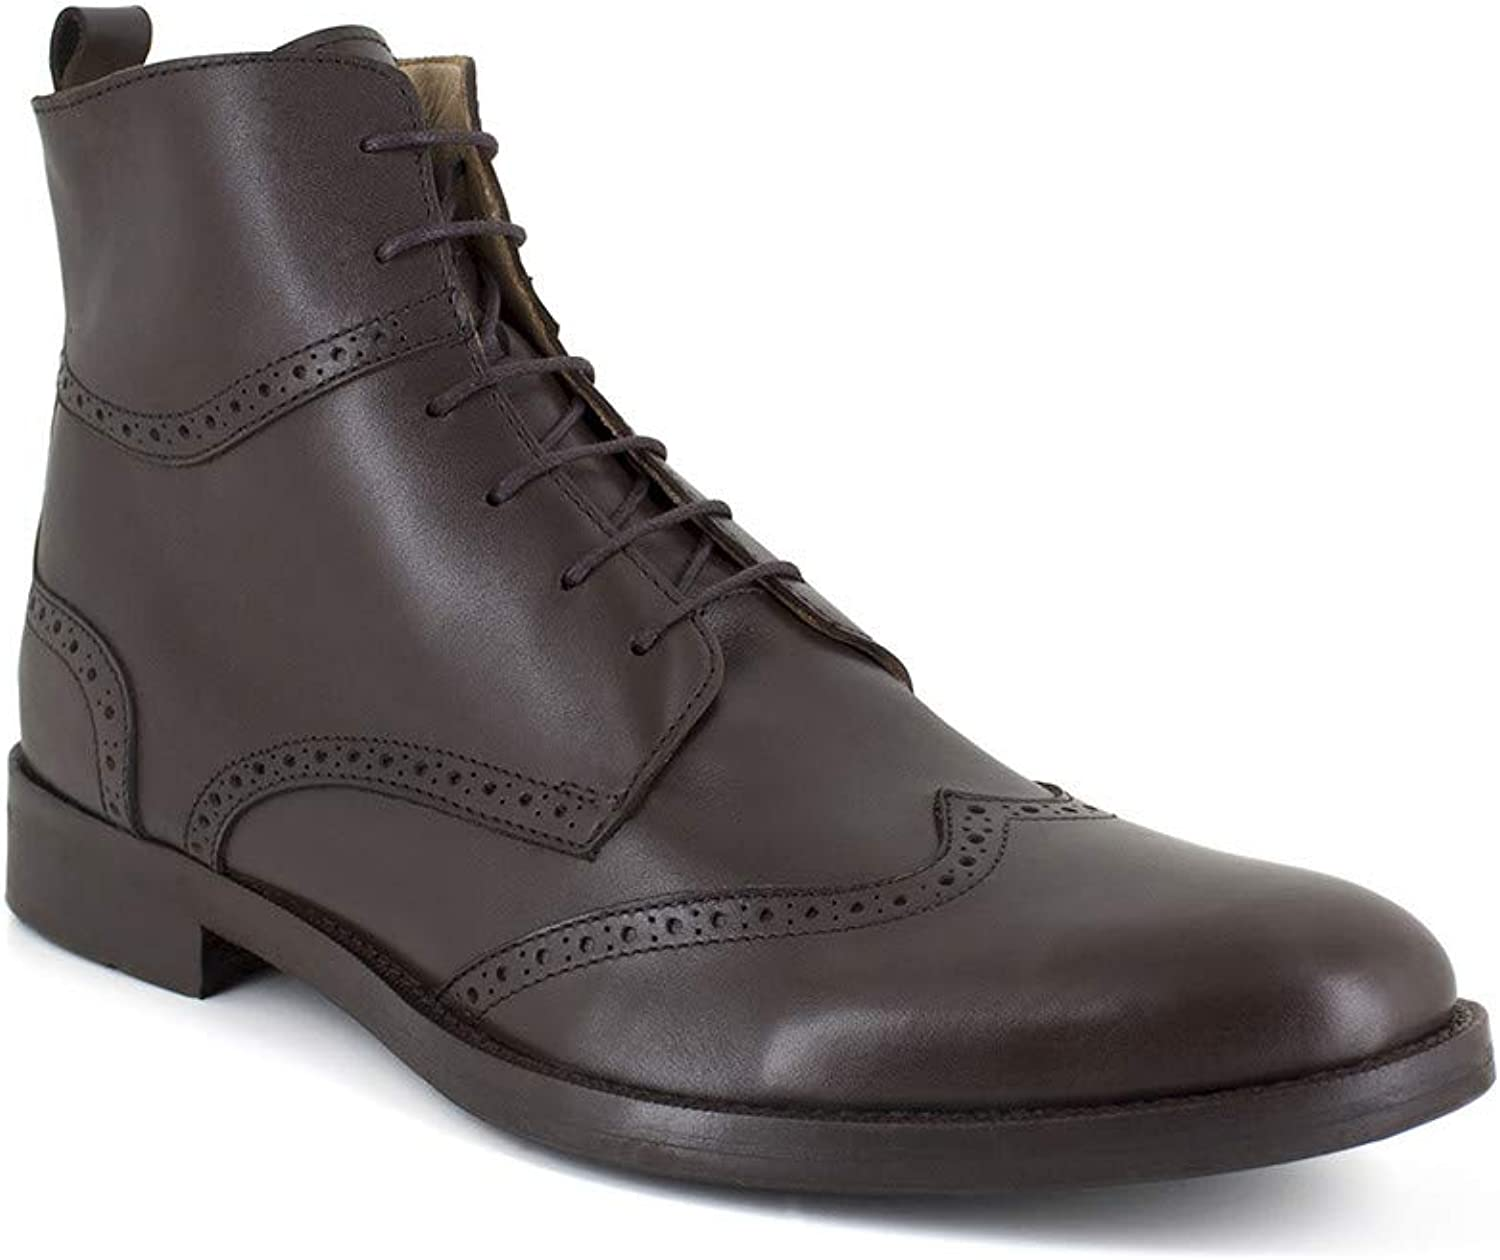 J.Bradford Low Boots Brown Leather JB-Hector